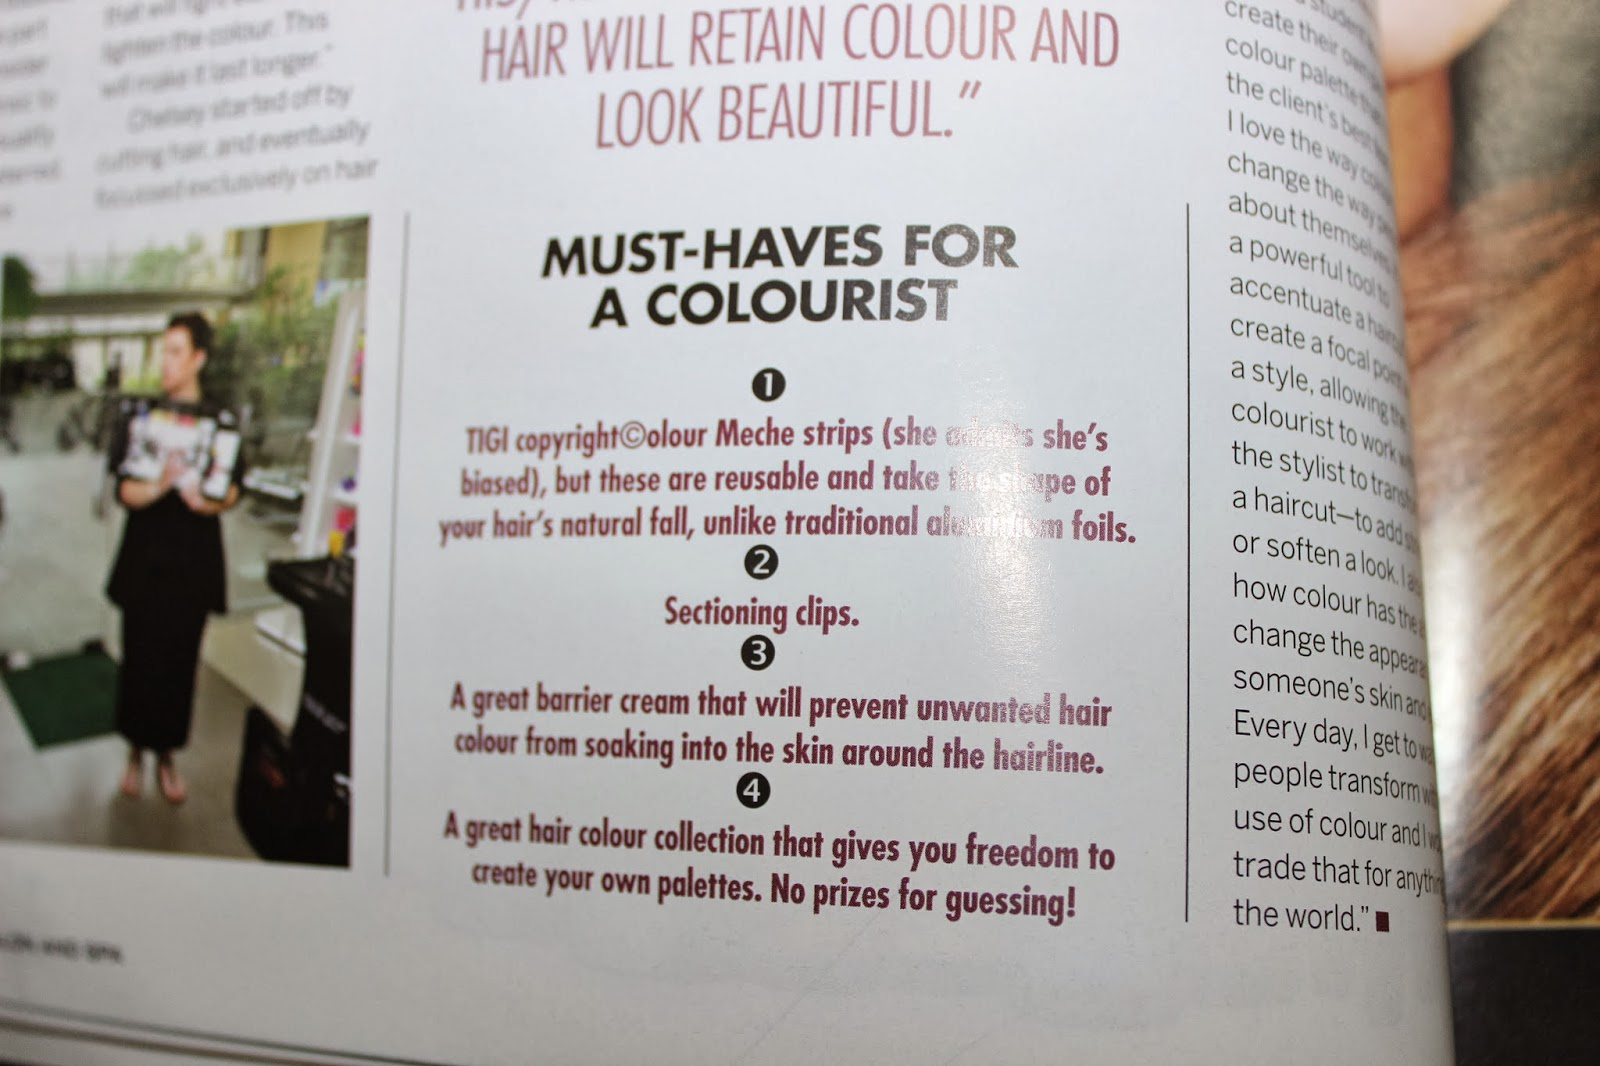 Chelsey lloyd, Global Expert at Tigi shares her wisdom and must-haves for a colurist.